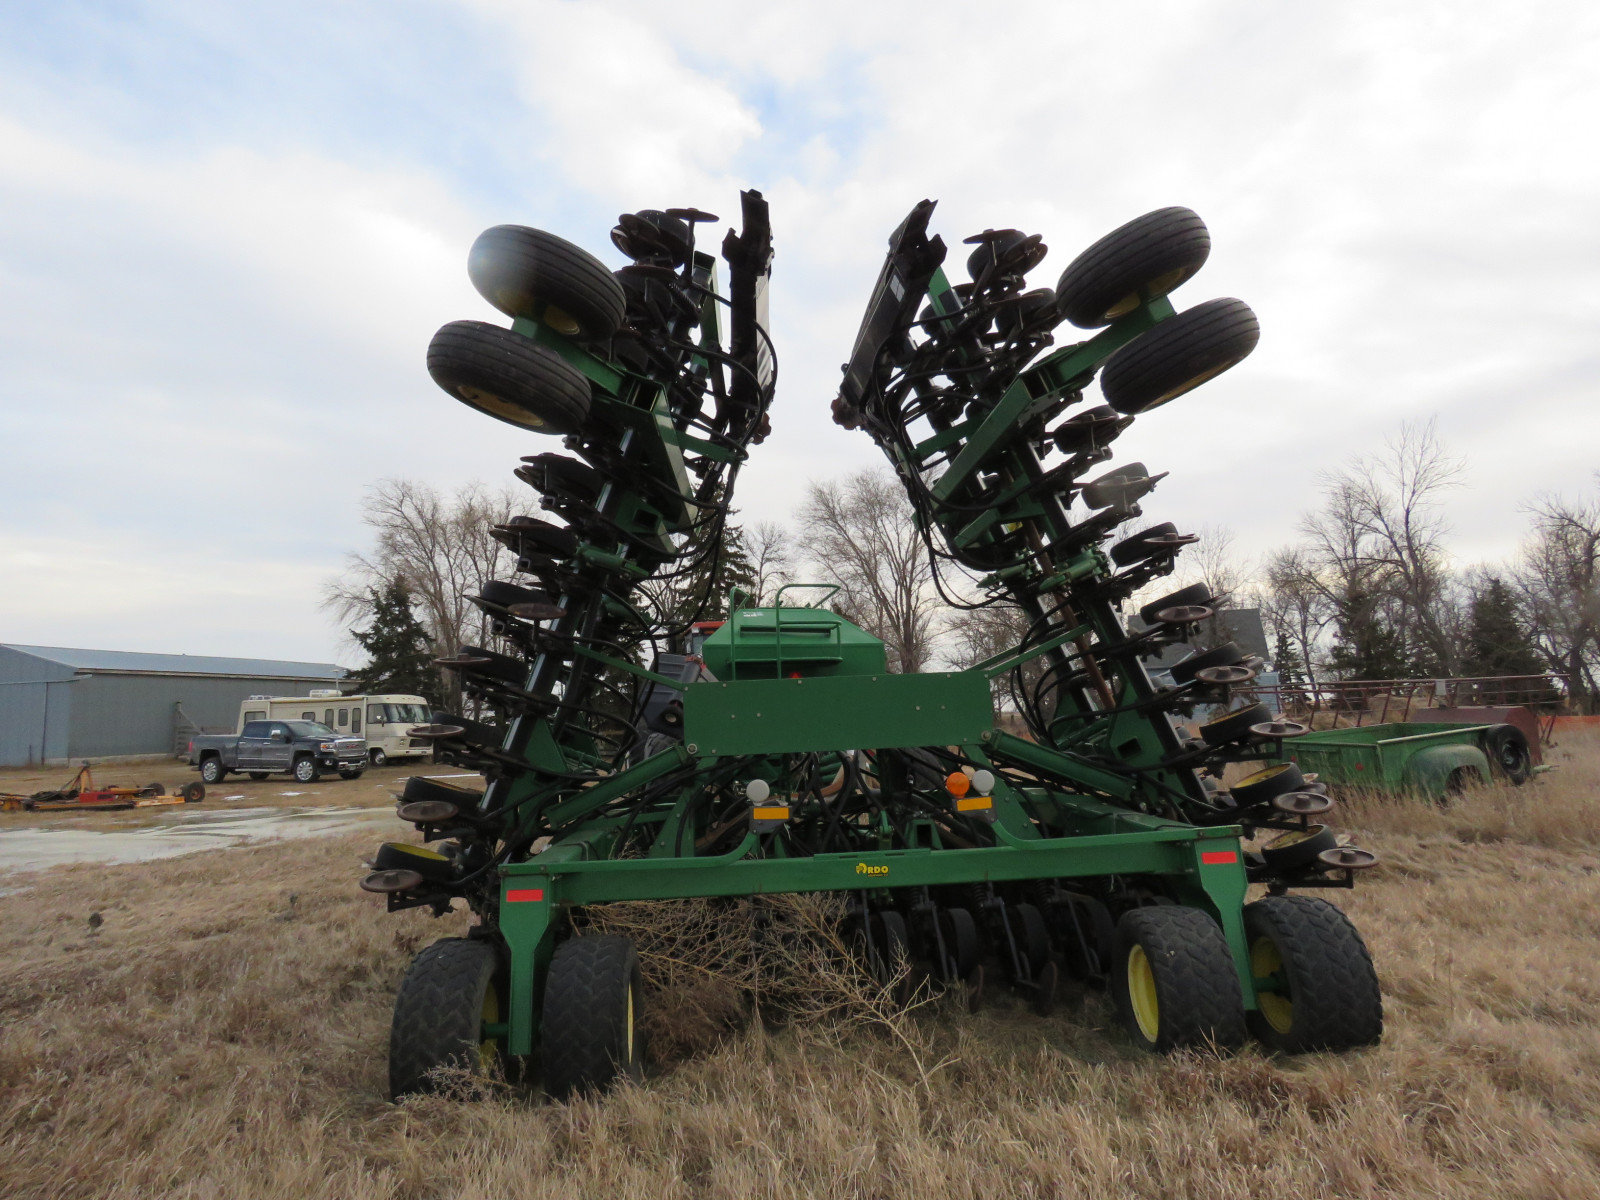 1997 John Deere Air Seeder - Image 3